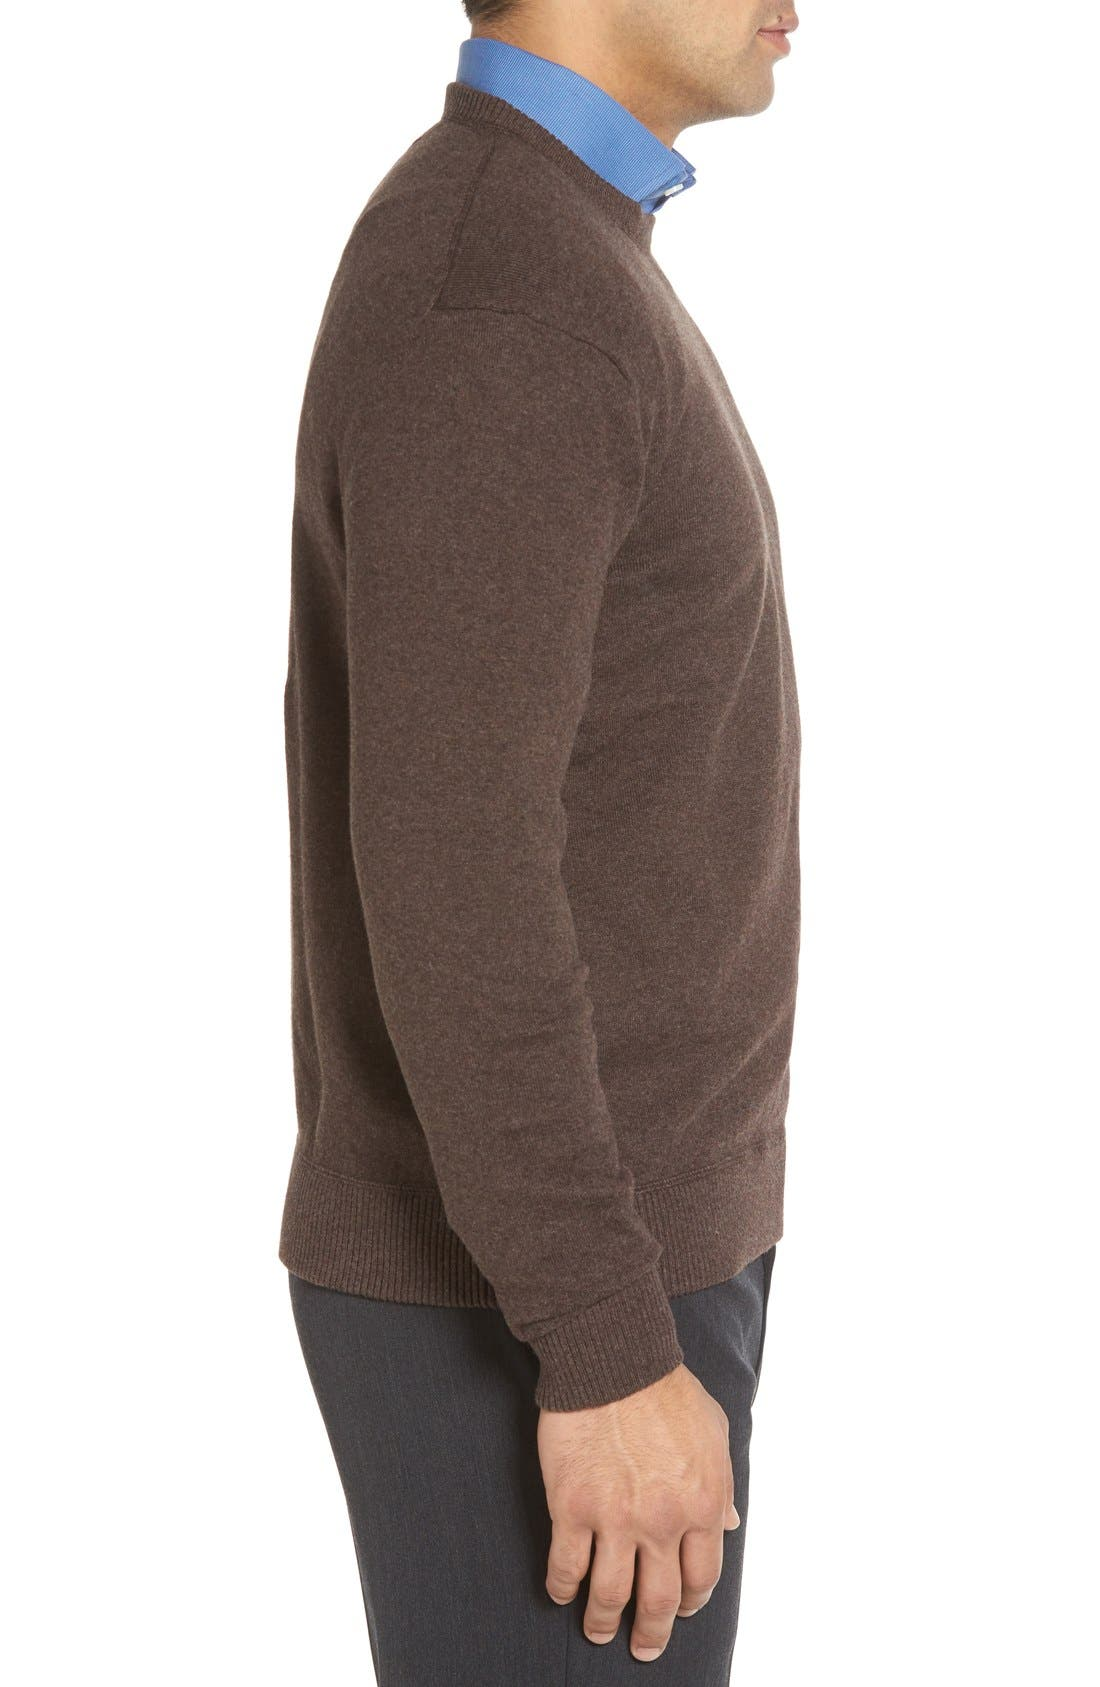 'Jersey Sport' Cotton Blend Crewneck Sweater,                             Alternate thumbnail 3, color,                             Coffee